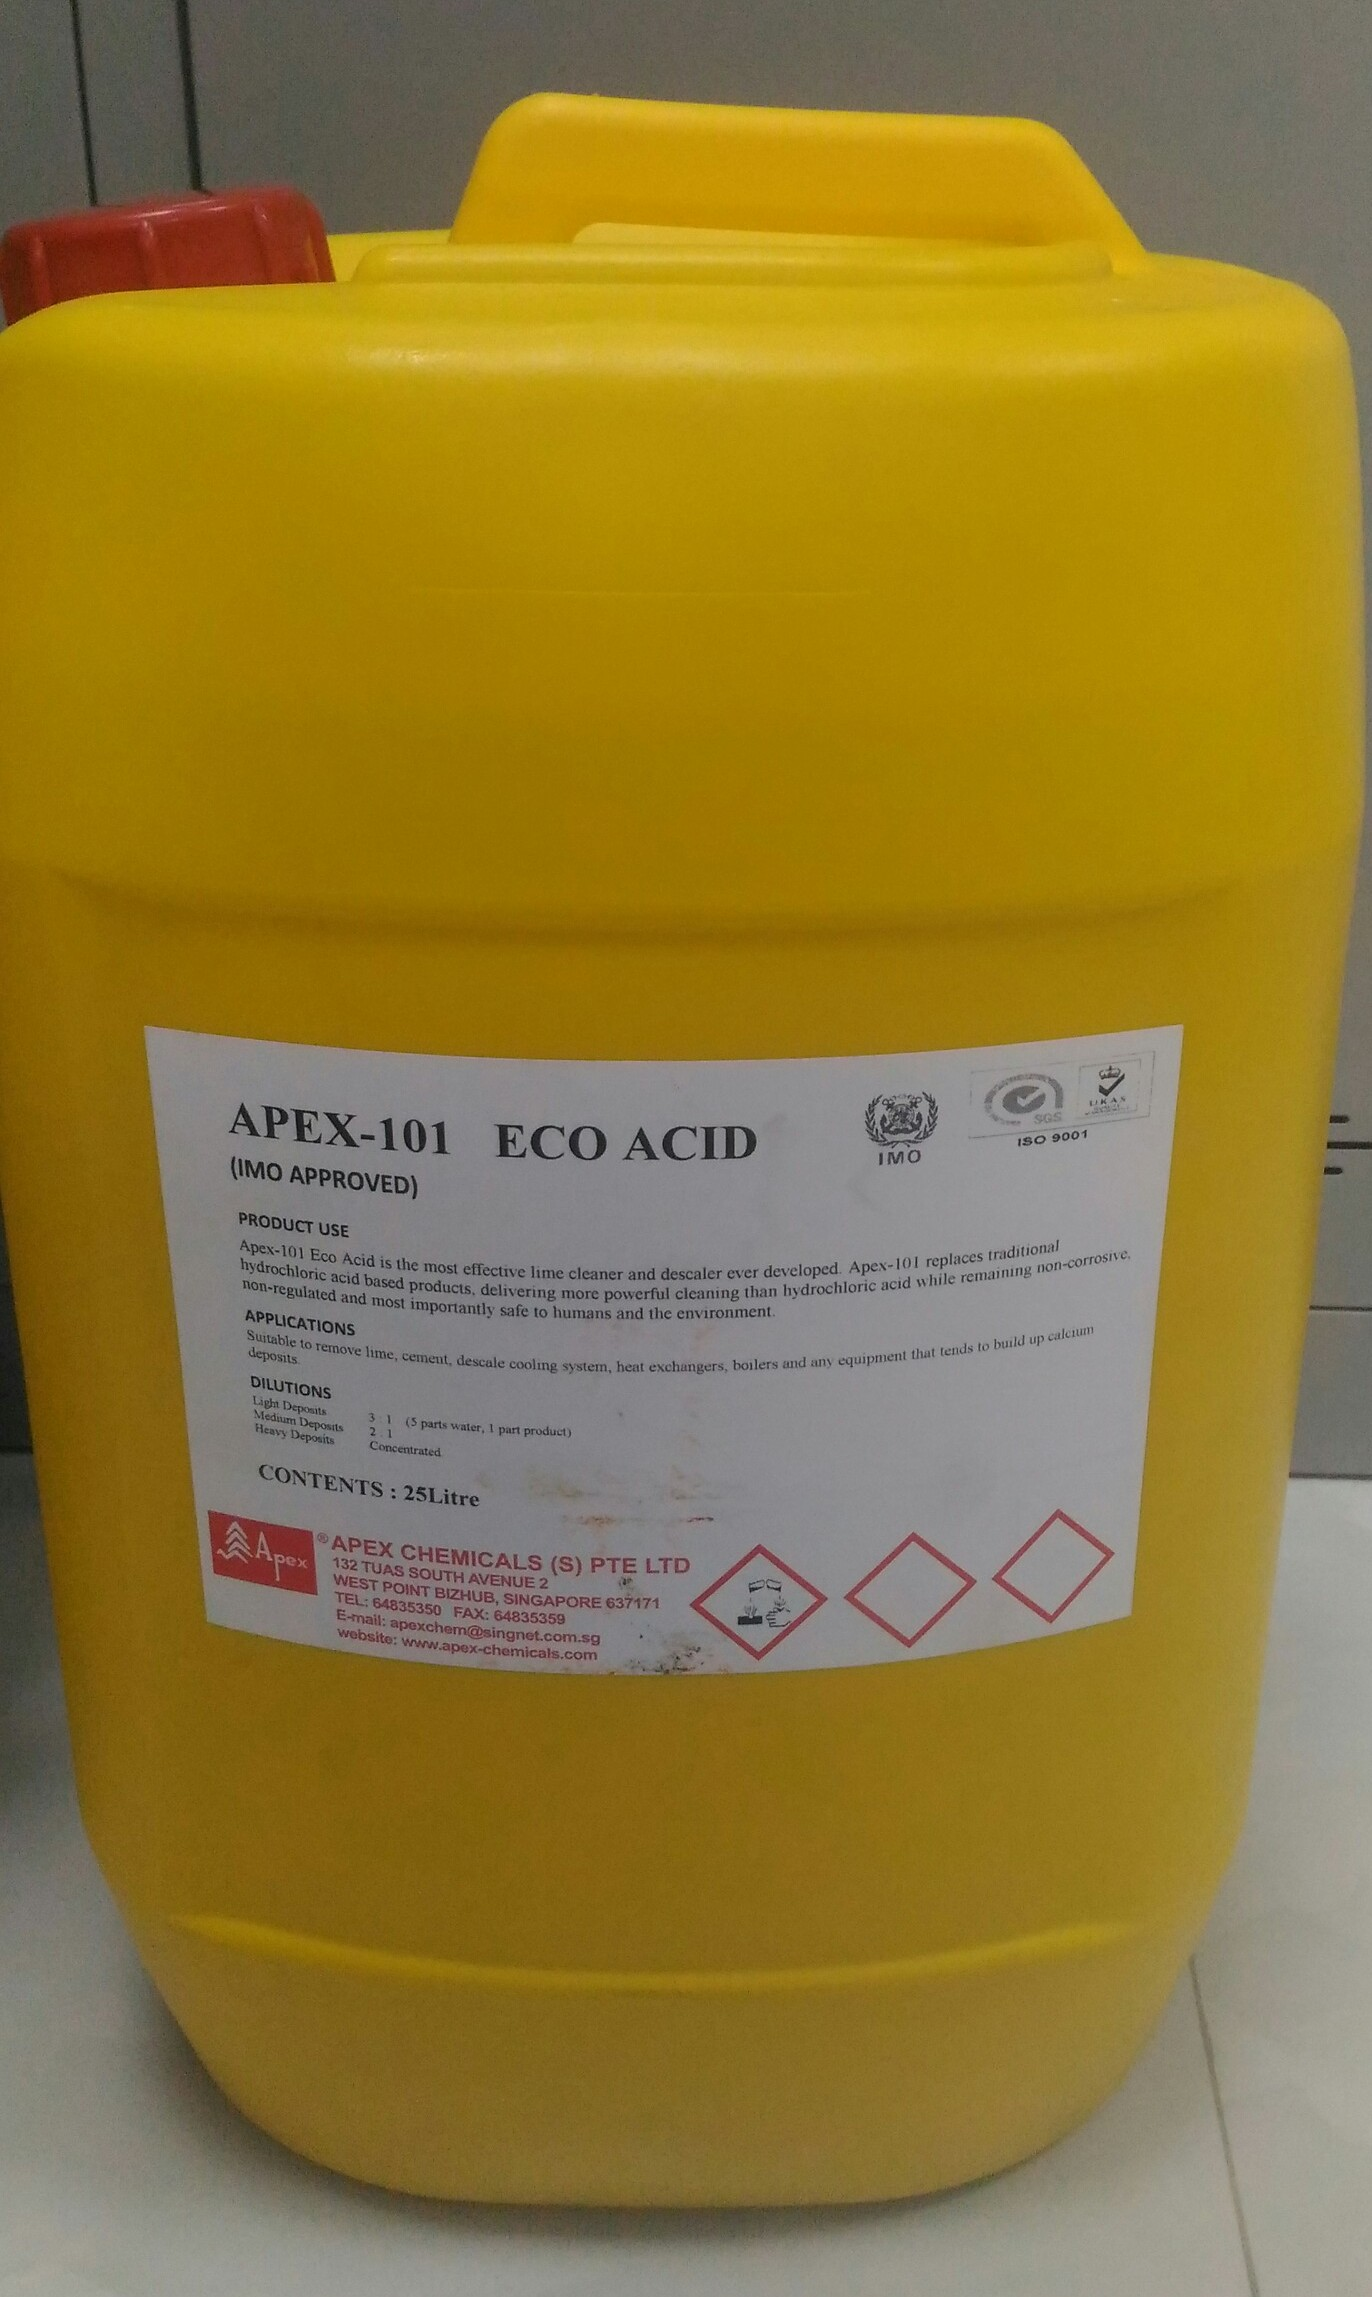 APEX-101 ECO ACID